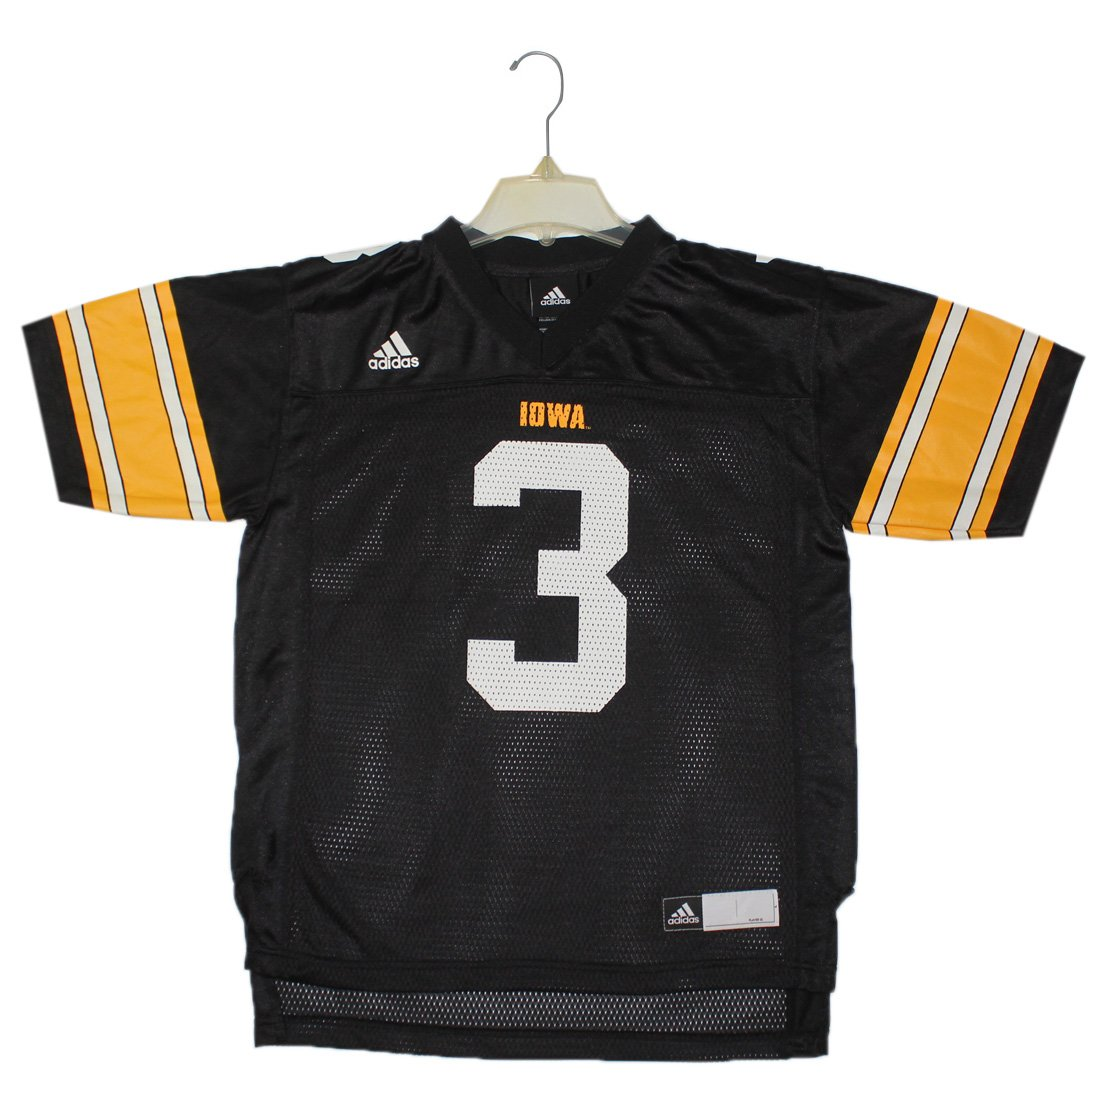 8ba2d1d93 50%OFF Youth NCAA - IOWA HAWKEYES  3 Athletic Short Sleeve Jersey Shirt